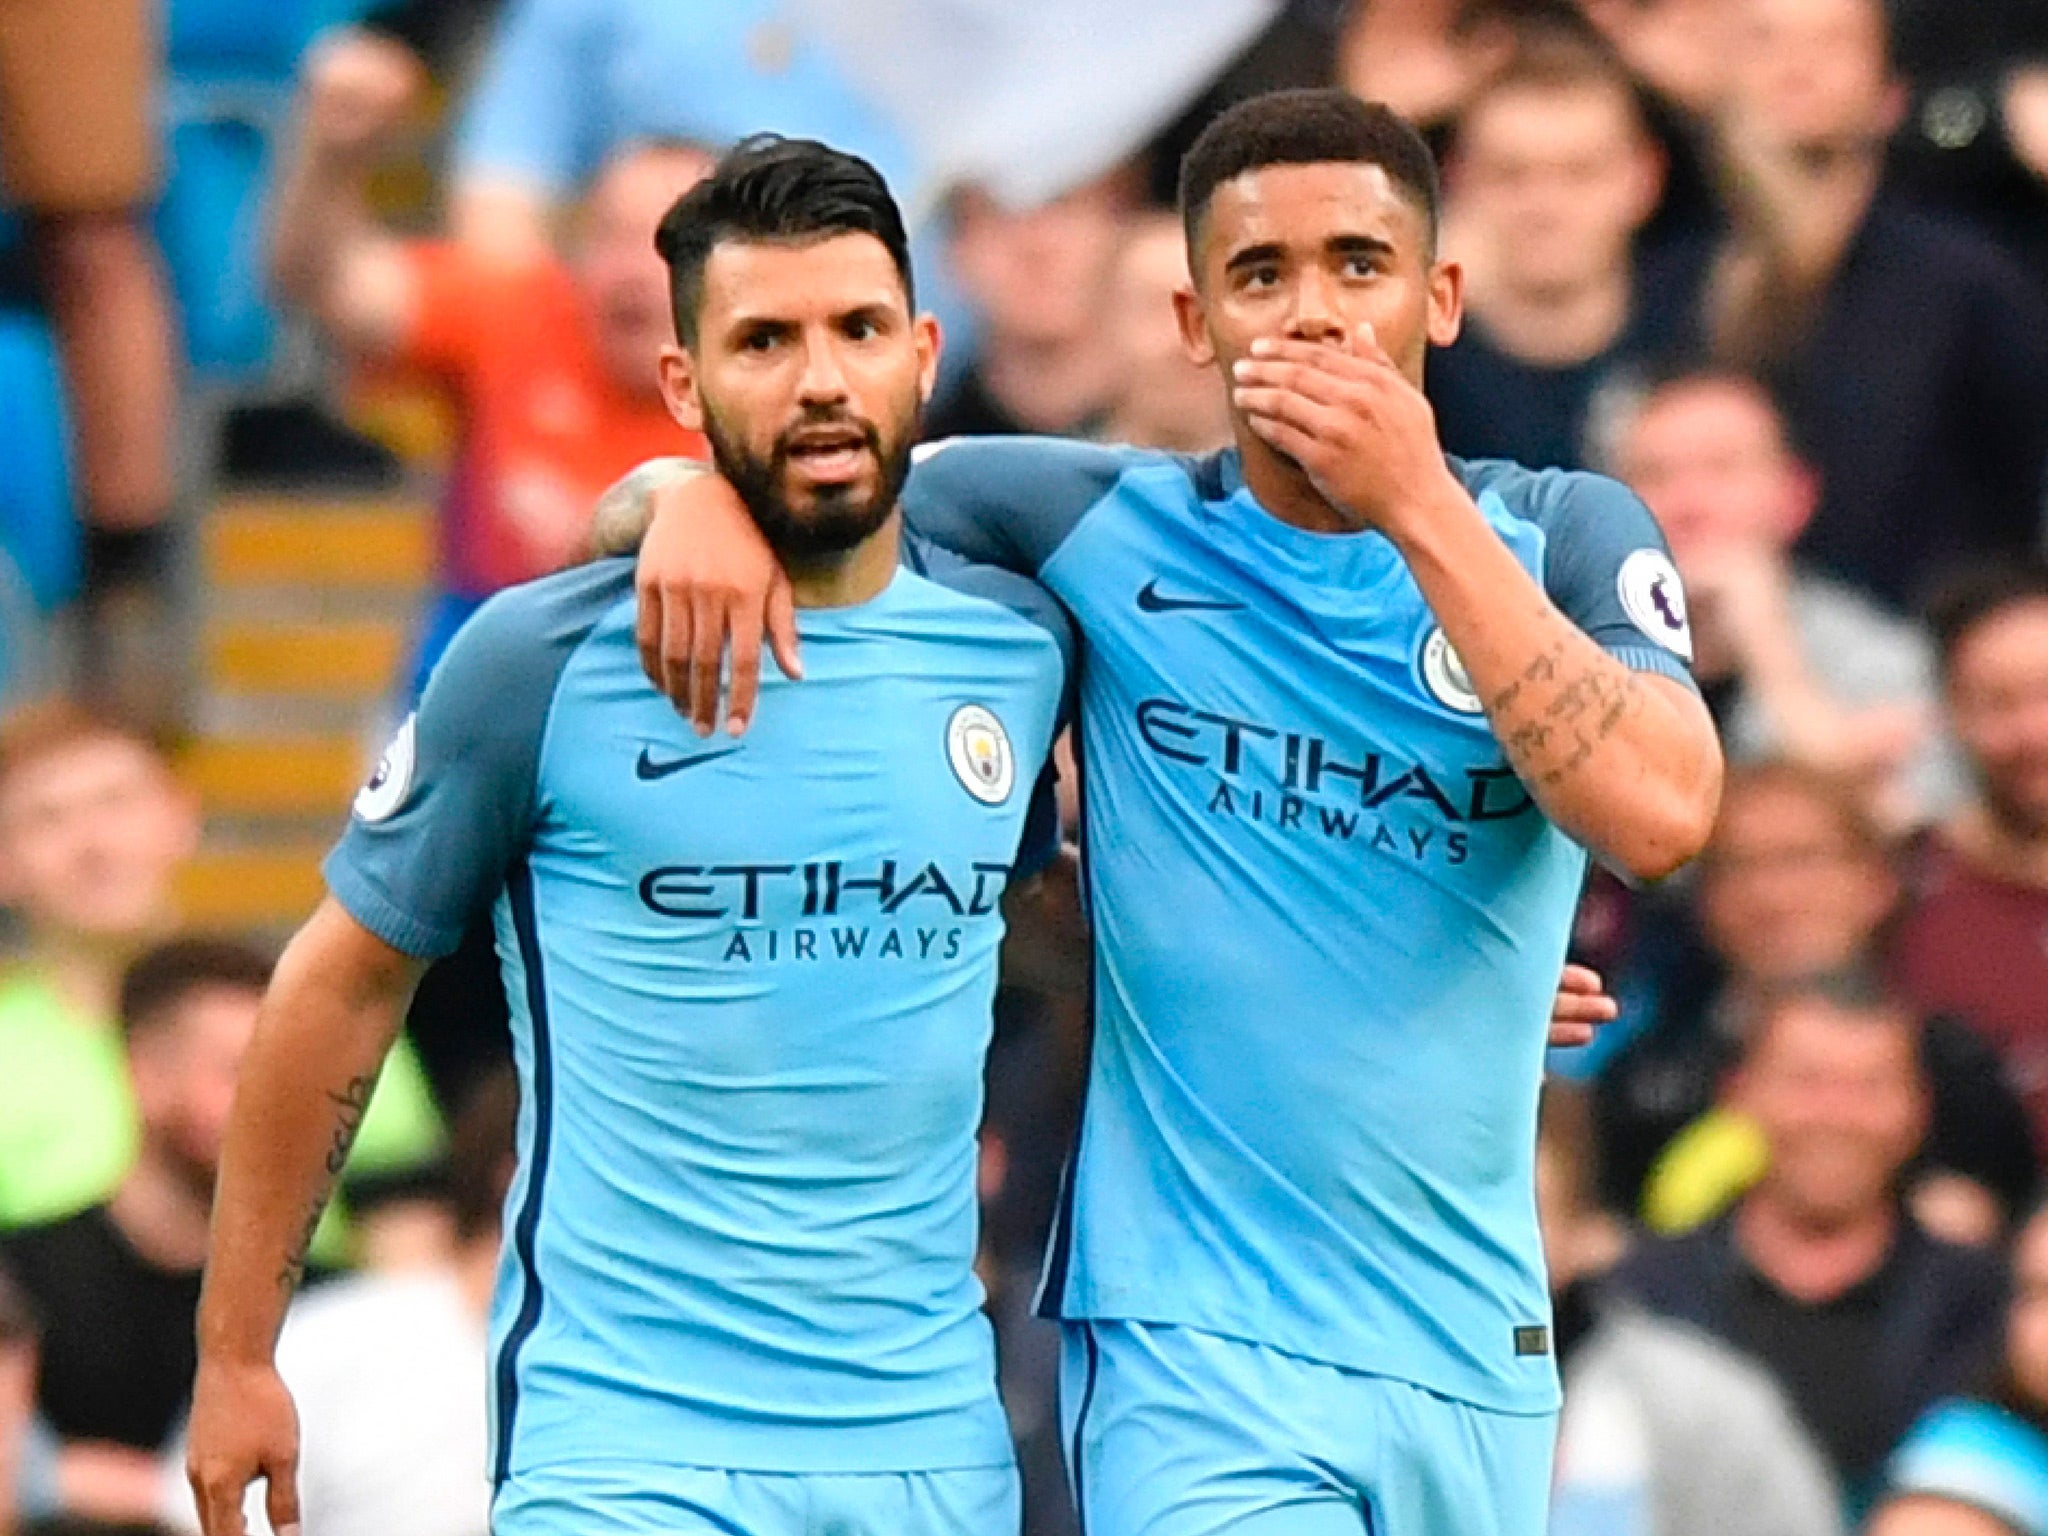 Manchester City pair Sergio Aguero and Gabriel Jesus can play together, insists Pep Guardiola